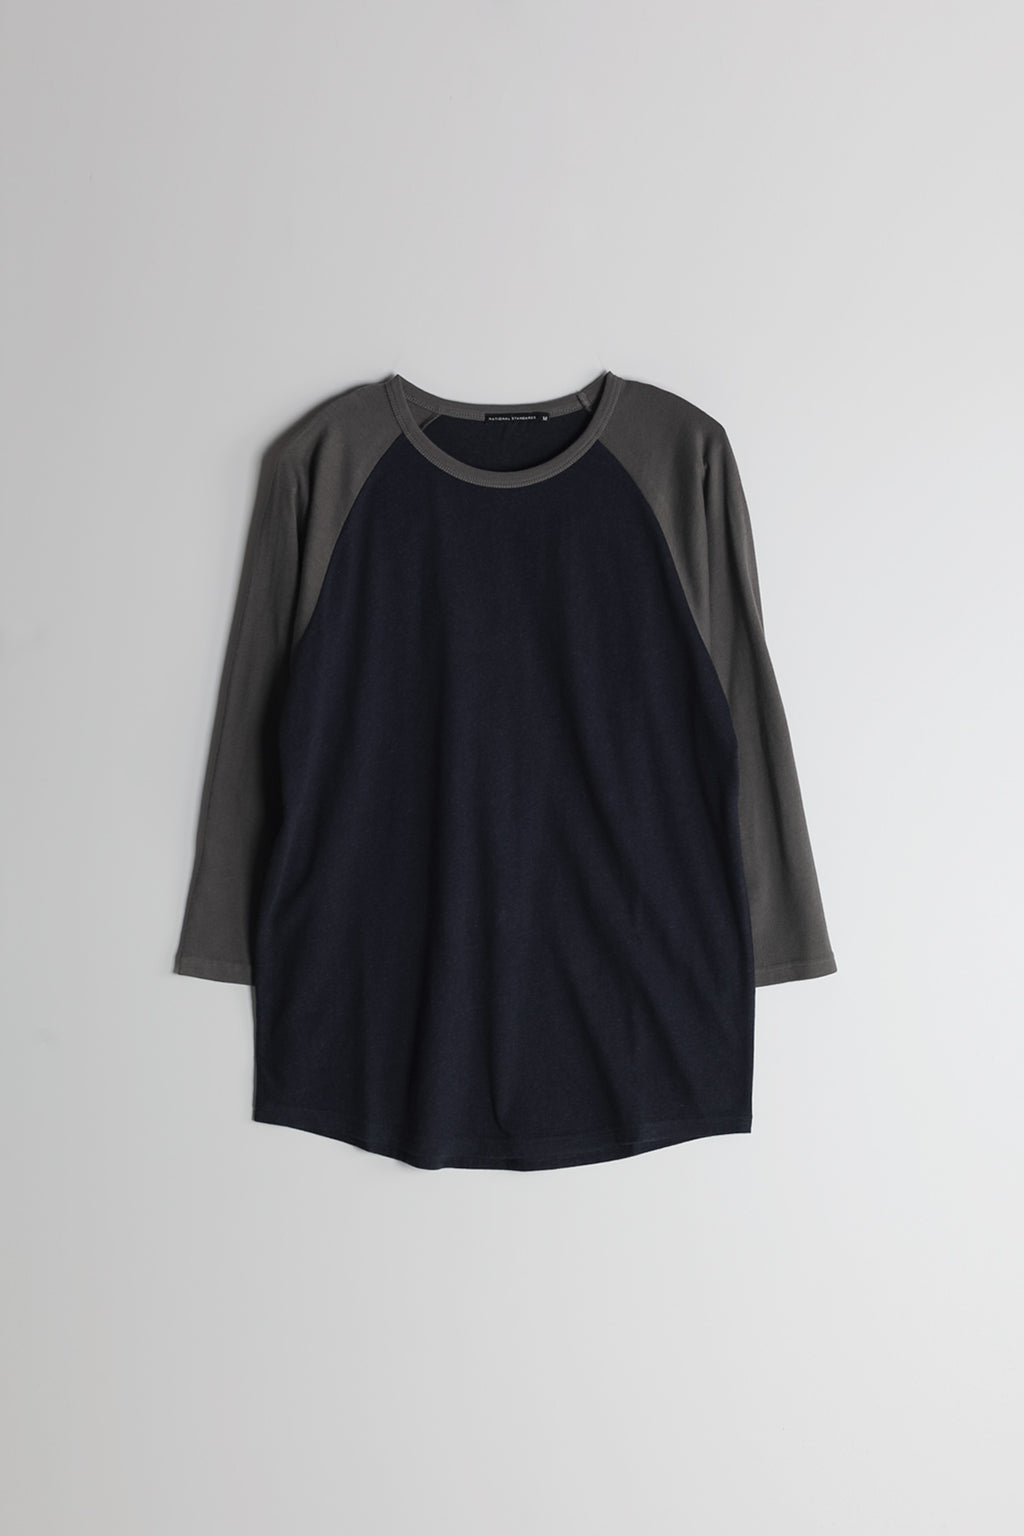 Spun Jersey Raglan in Navy and Grey